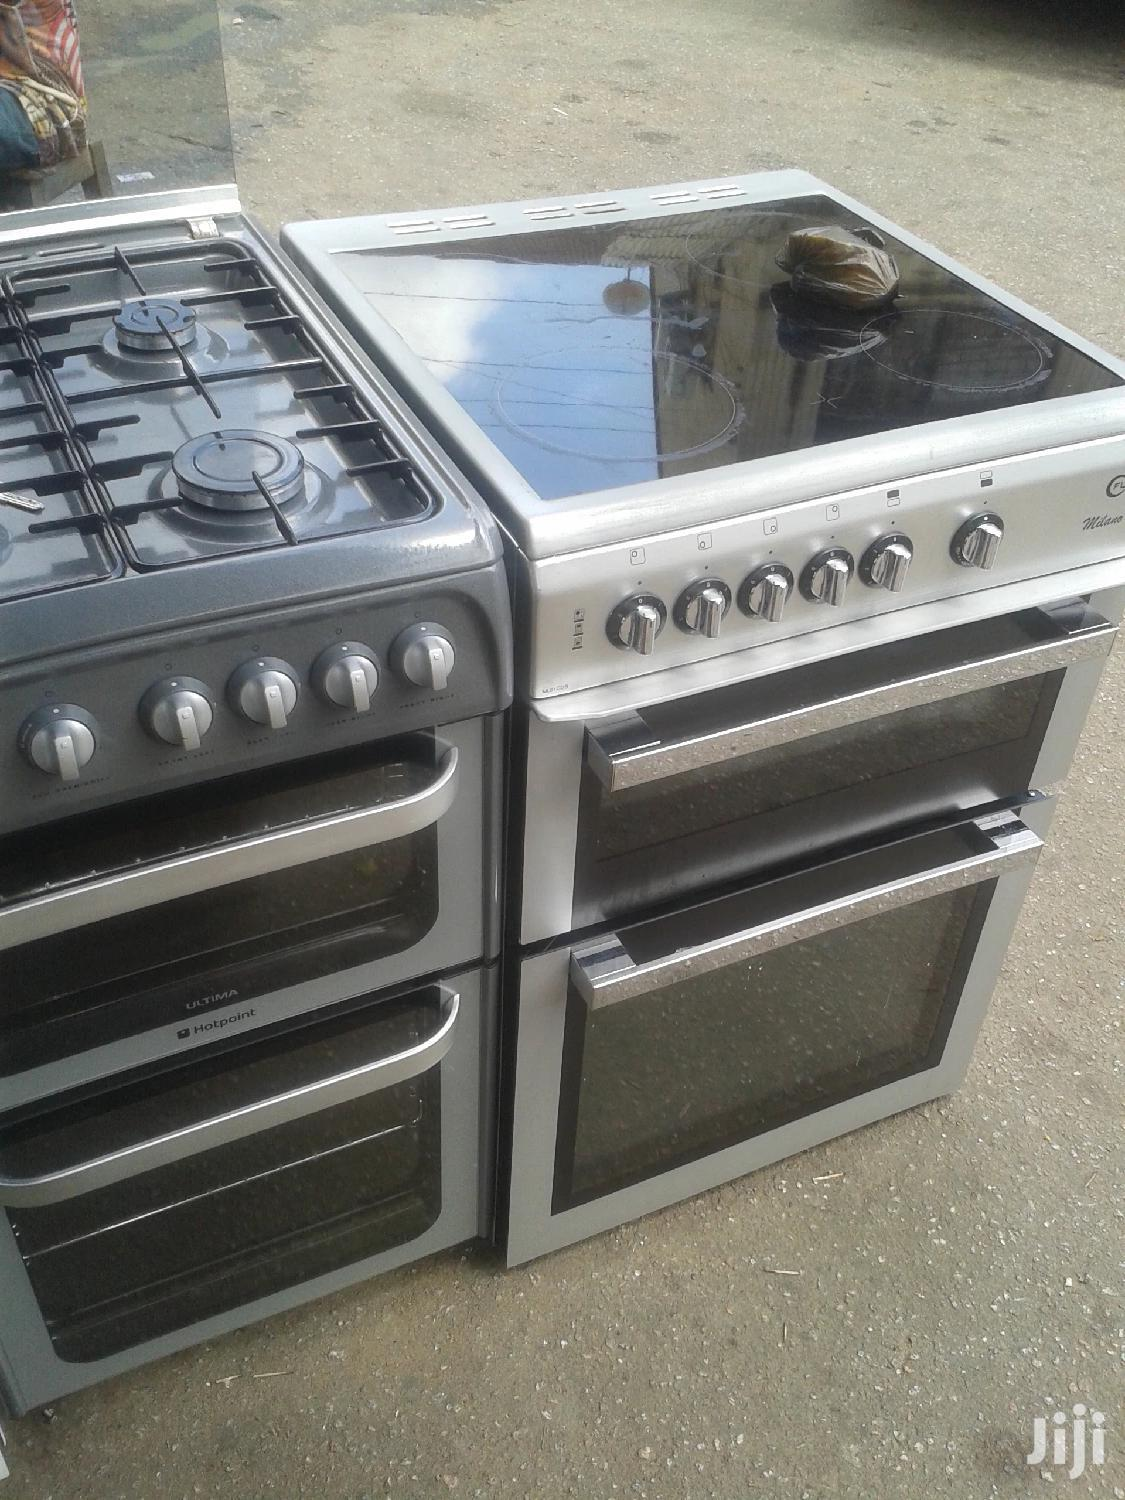 Archive: Gas Oven And Accessories